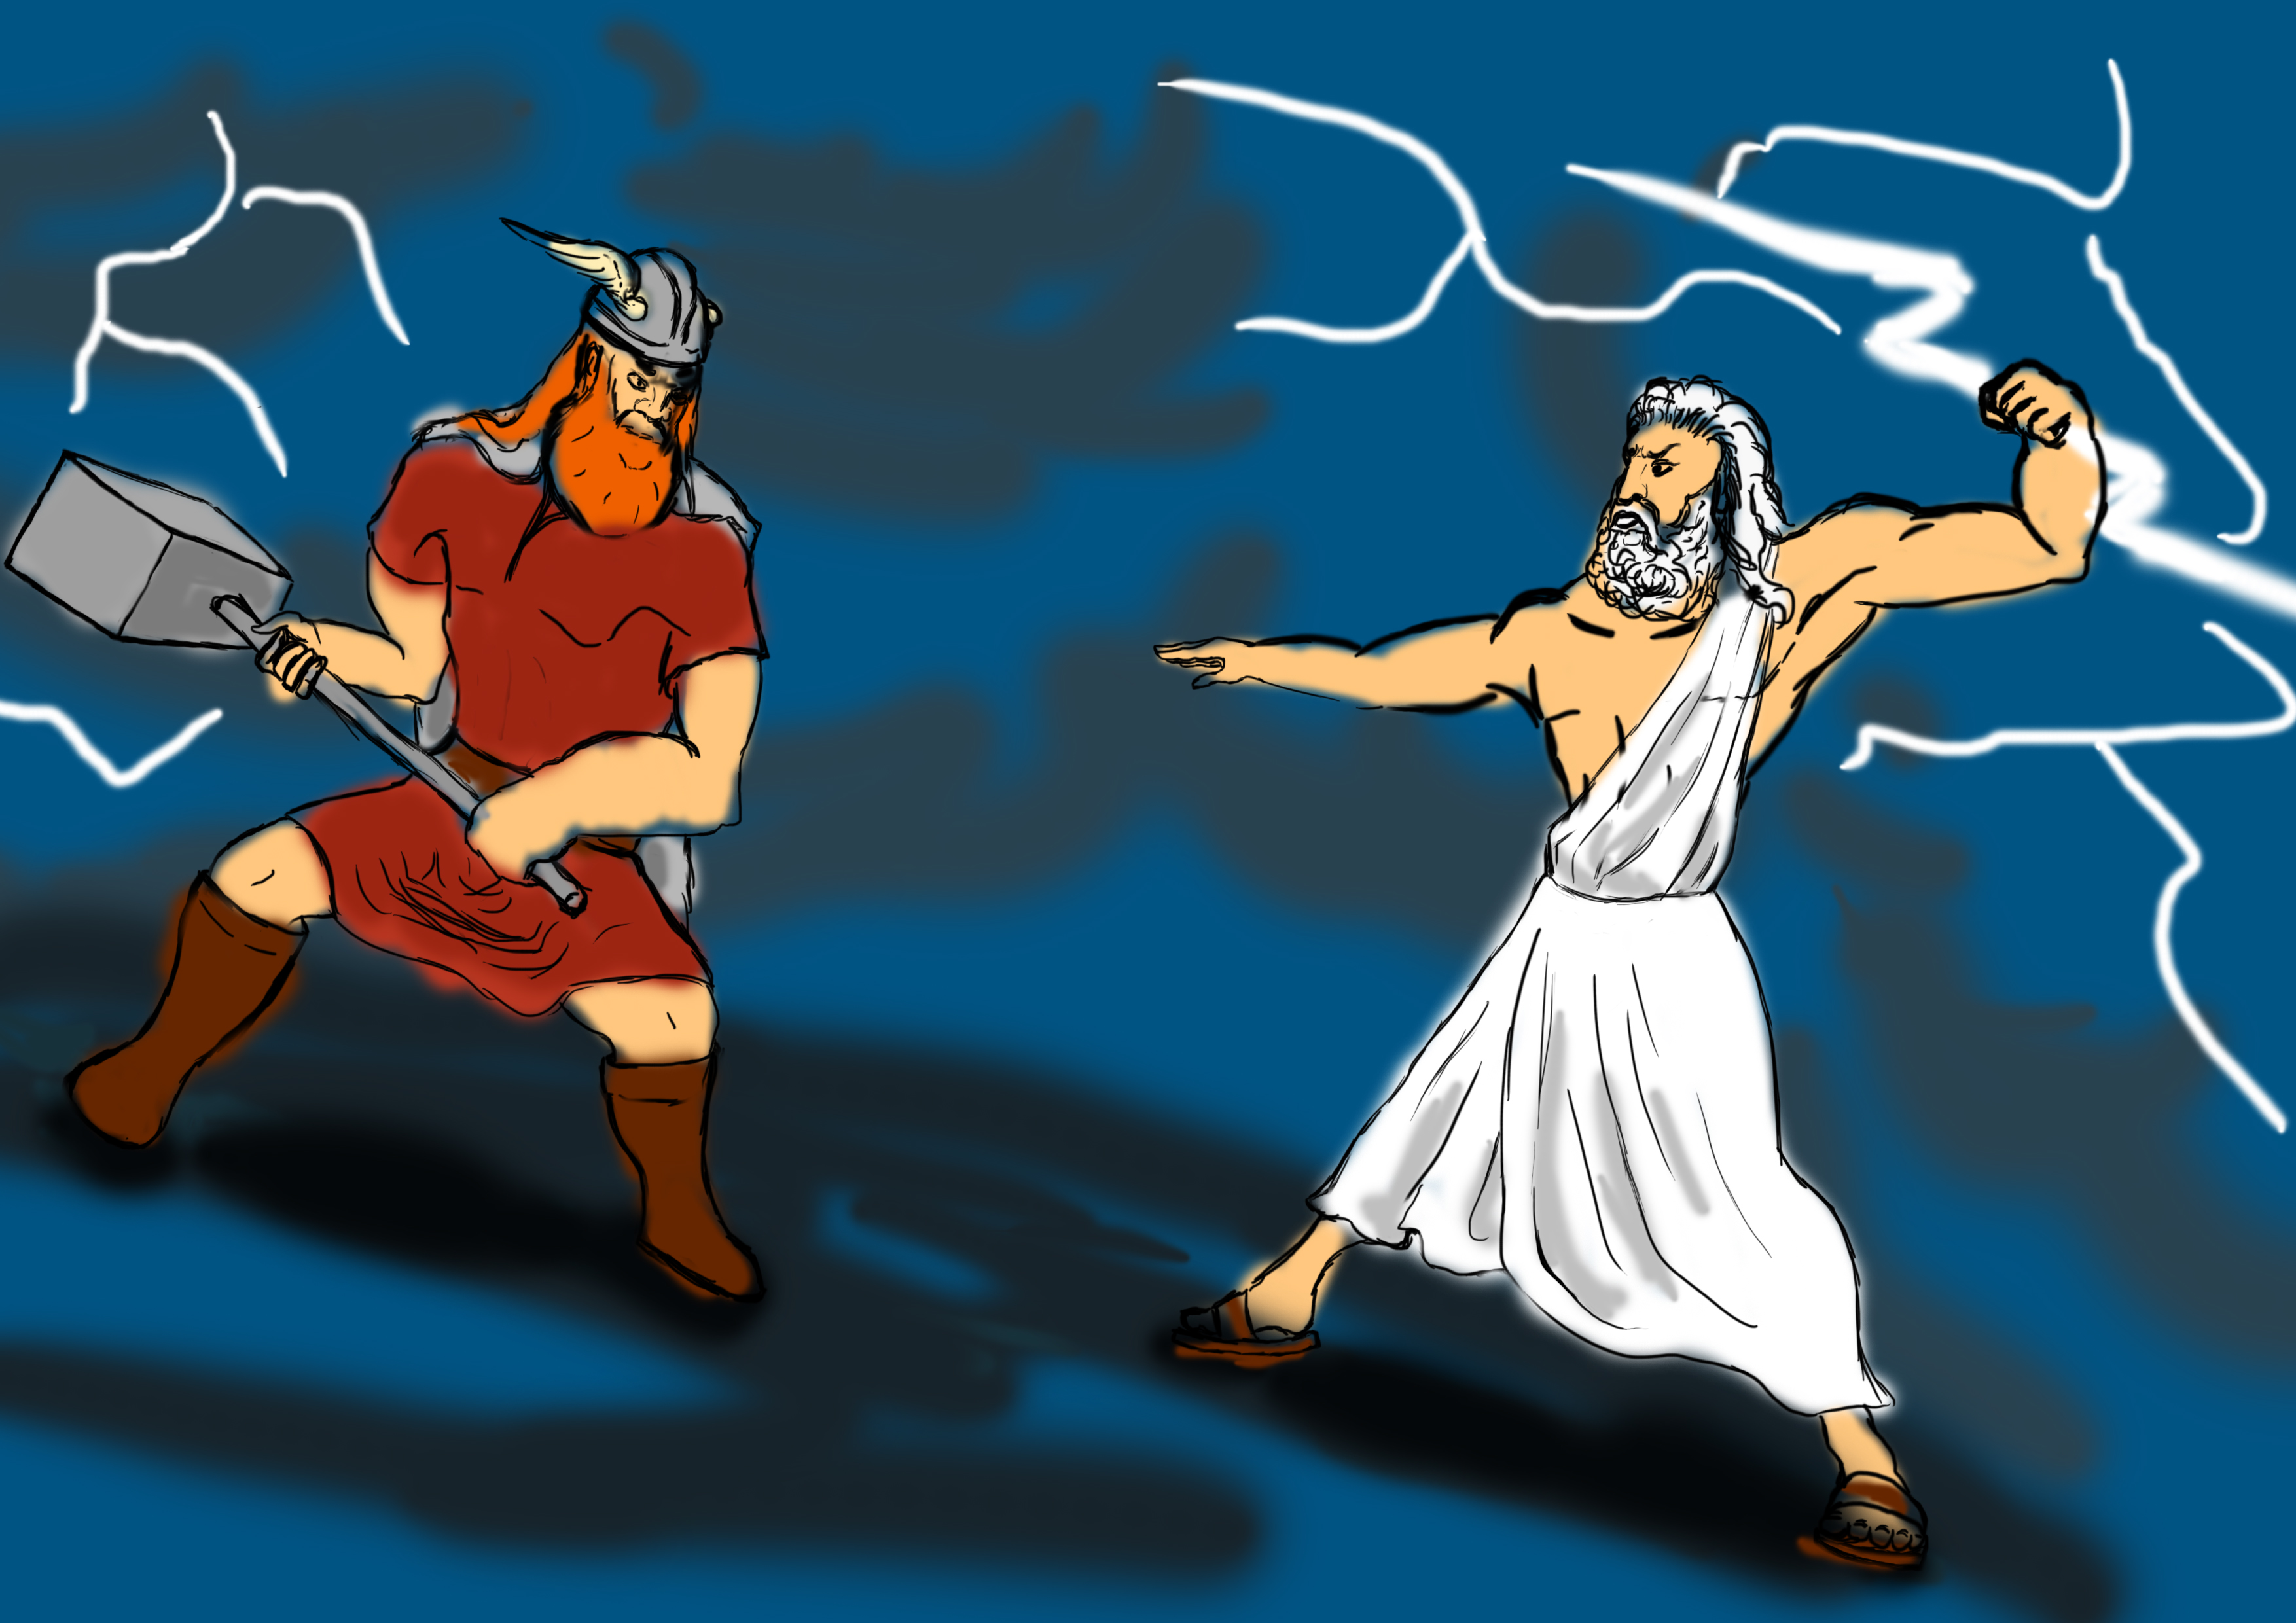 Zeus vs Thor by GodAntichrist on DeviantArt